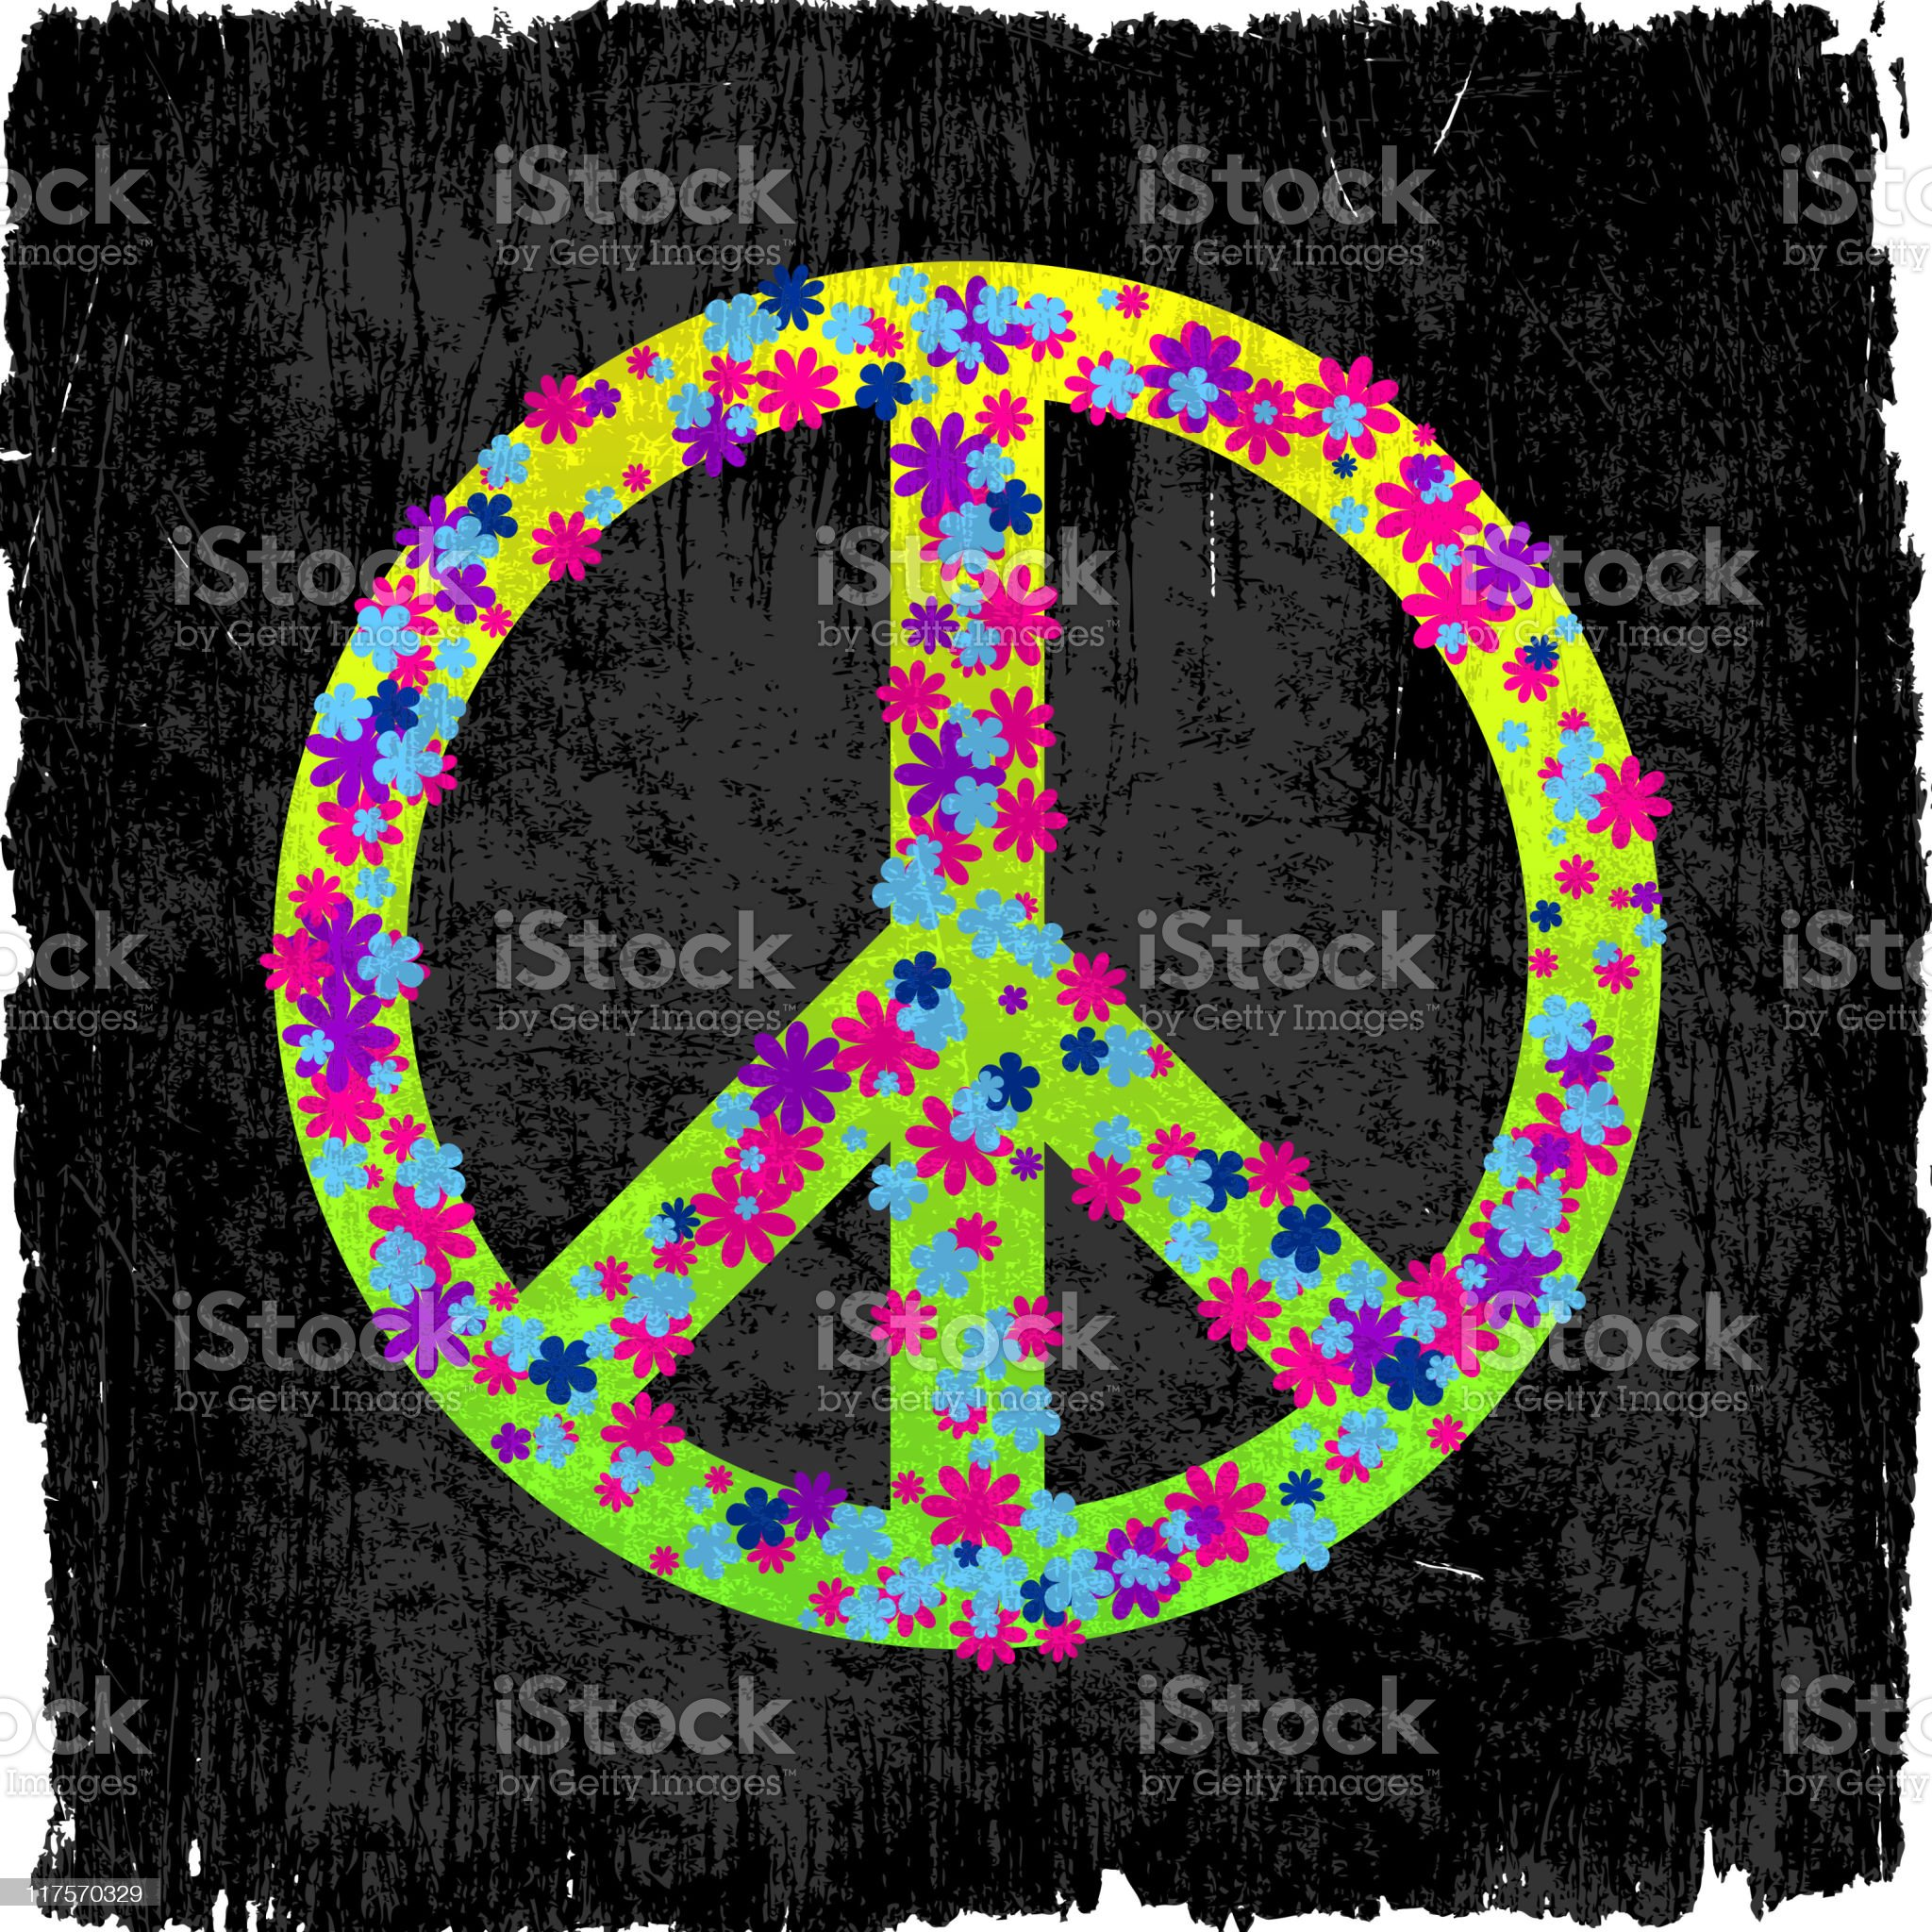 peace sign on royalty free vector Background. royalty-free stock vector art